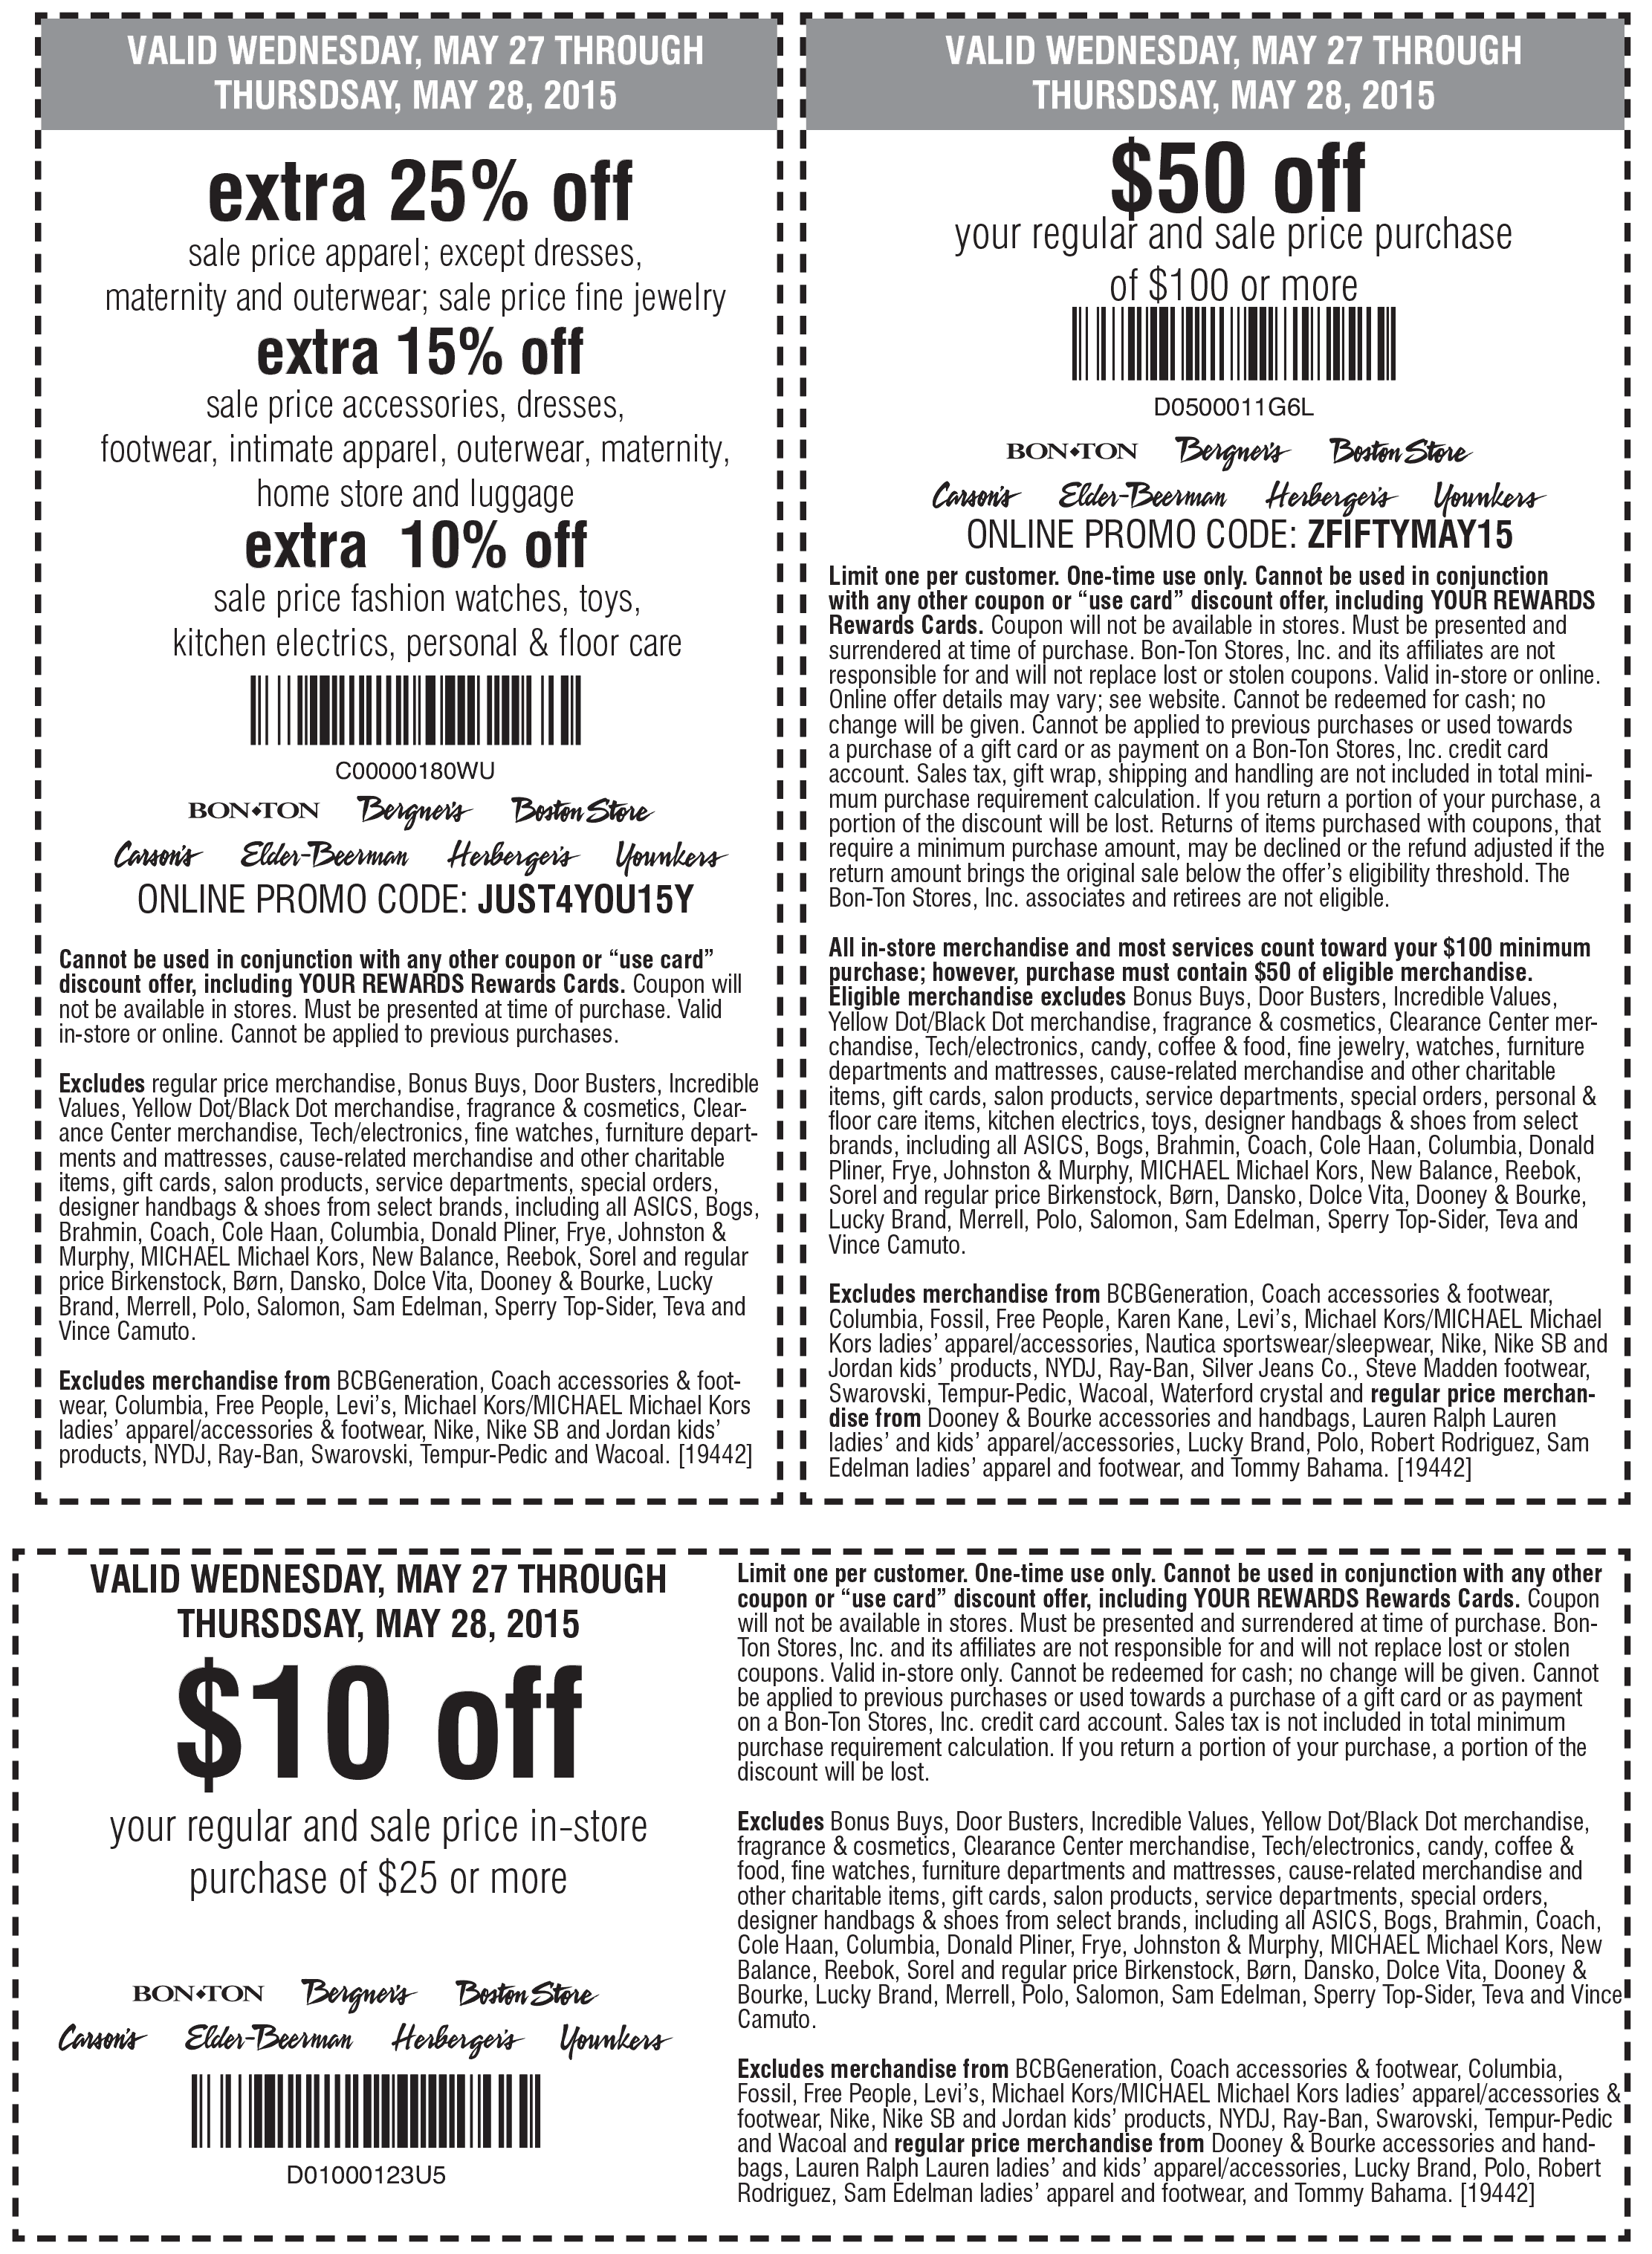 Carsons Coupon December 2016 $50 off $100 & more at Carsons, Bon Ton & sister stores, or online via promo code ZFIFTYMAY15